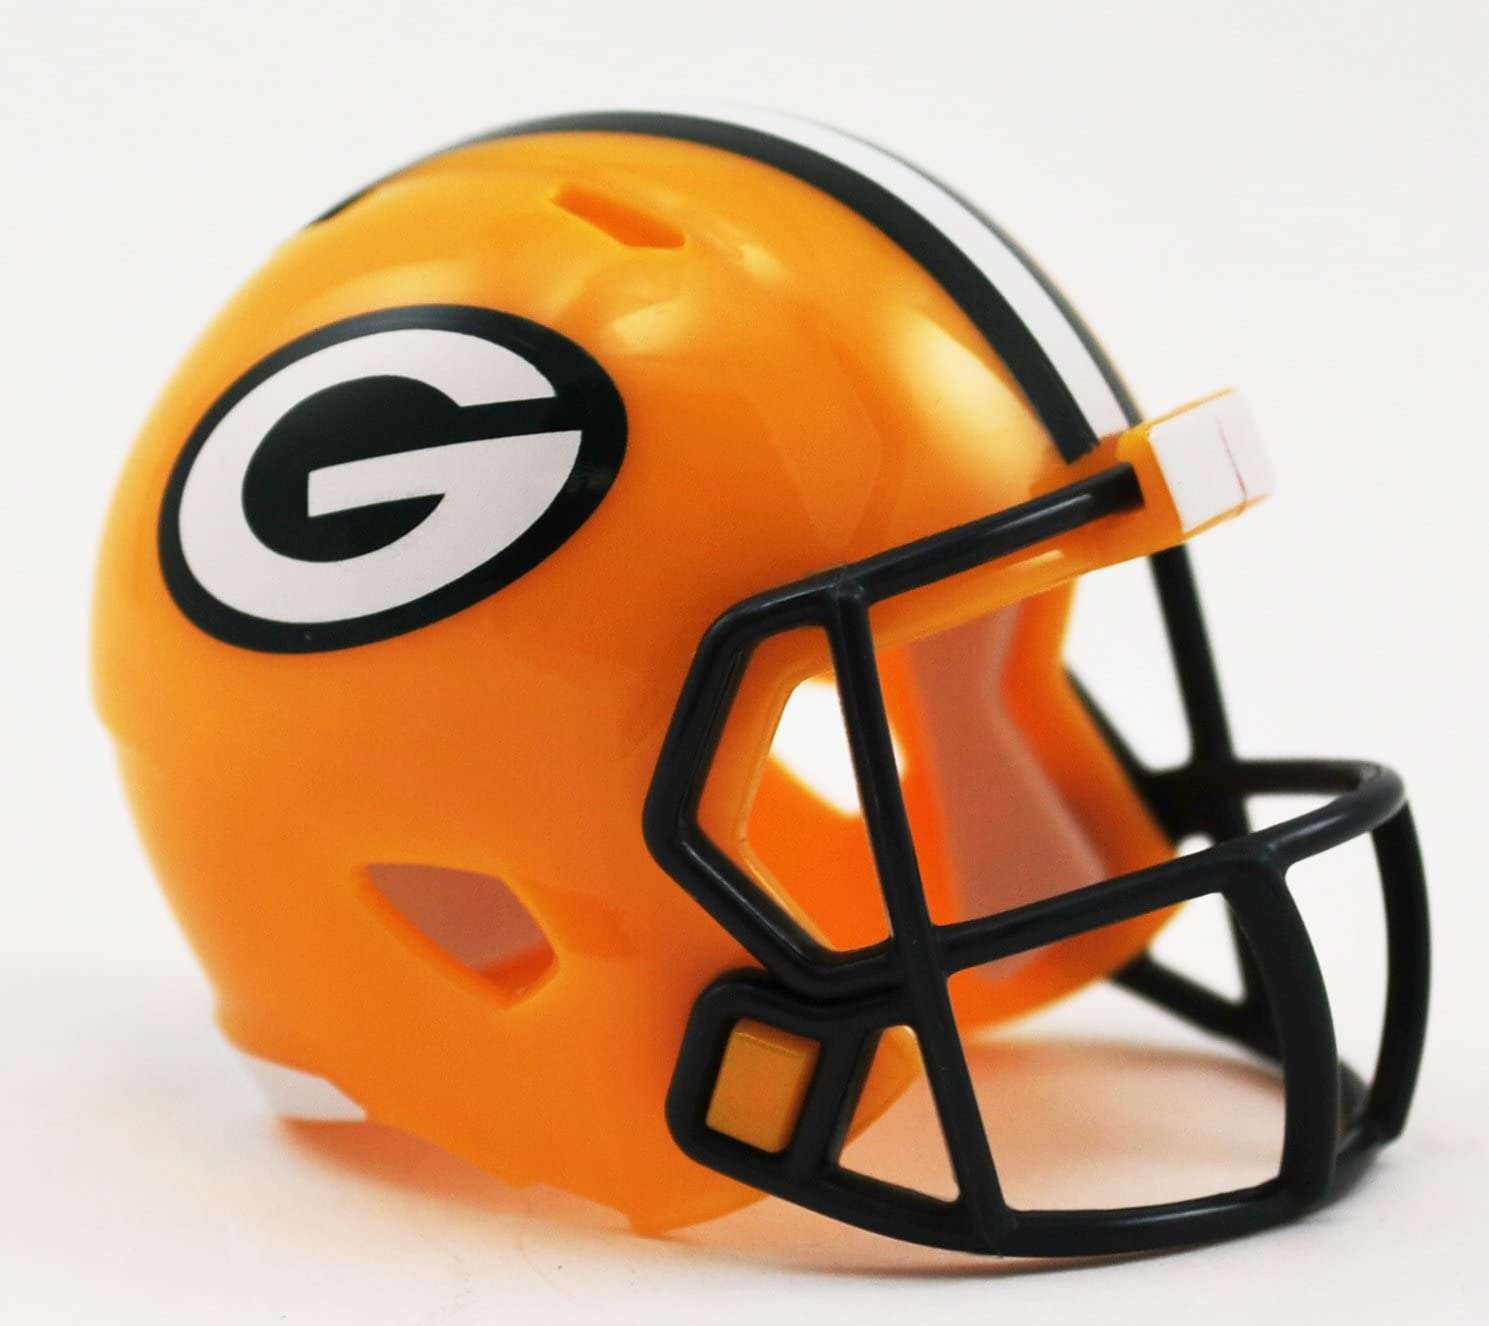 Green Bay Packers Nfl Cupcake Cake Topper Mini Football Helmet Amazon Co Uk Sports Outdoors